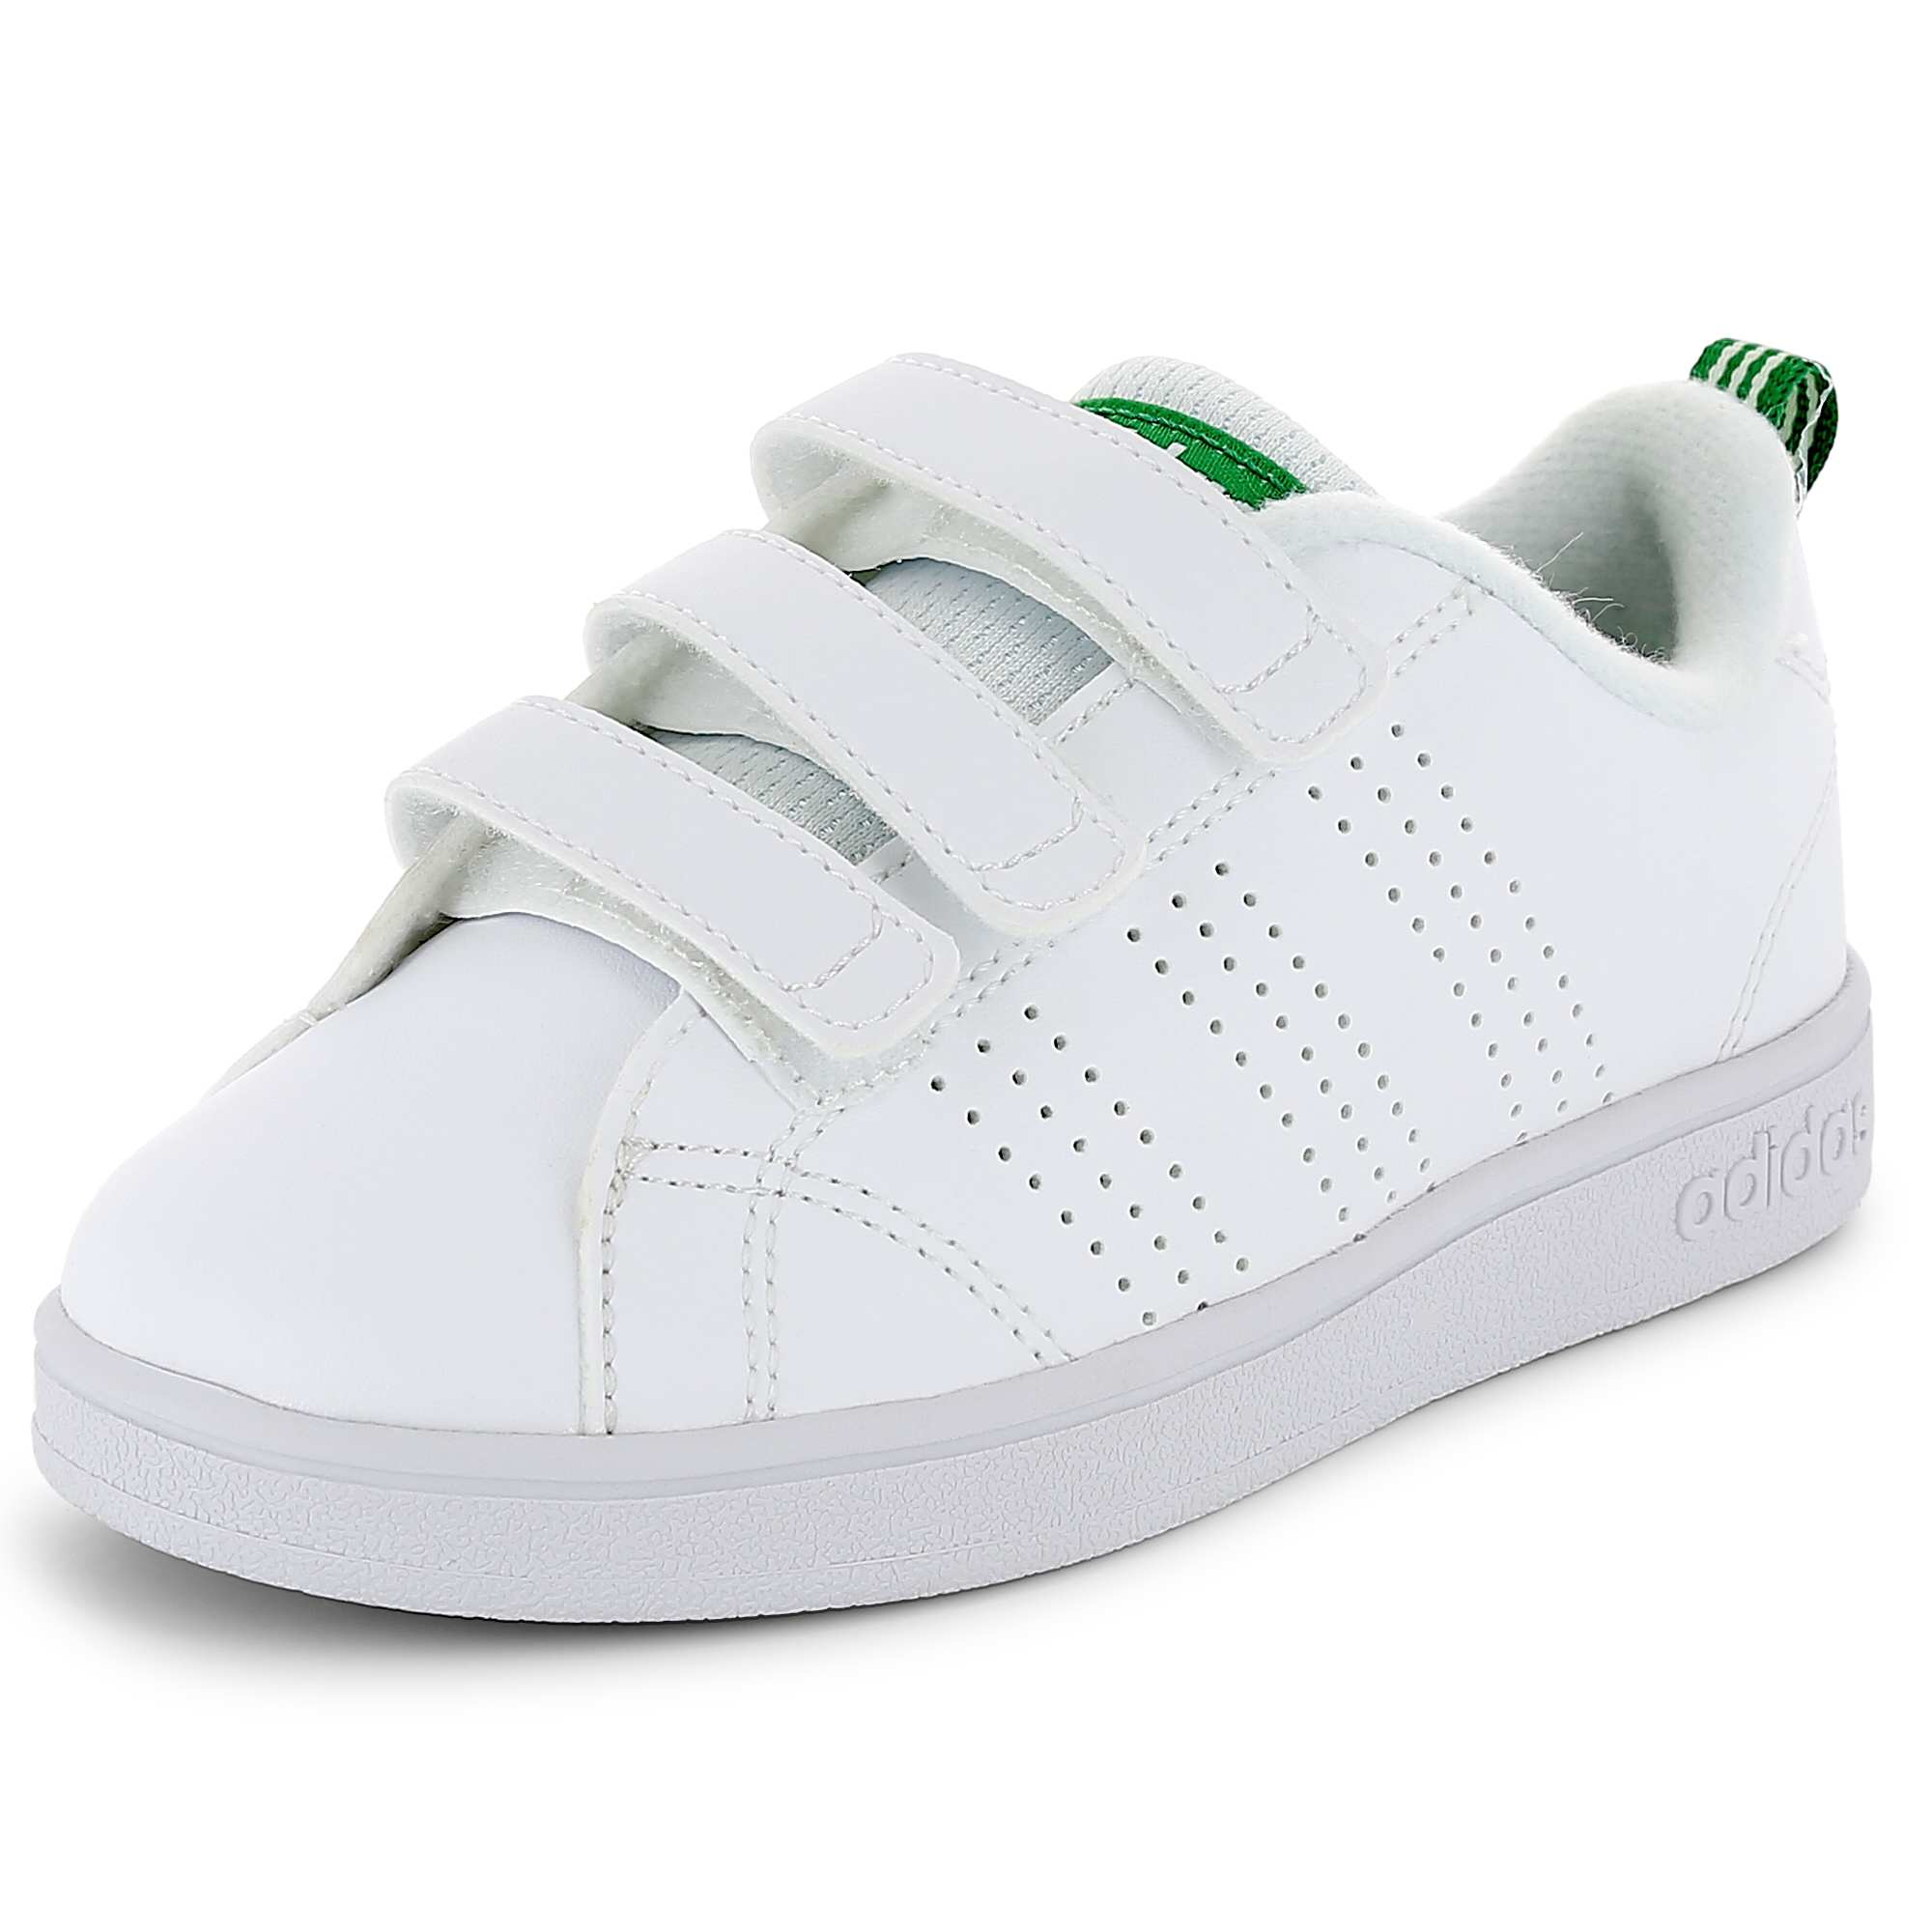 9030ee106 Zapatillas deportivas con velcros 'Adidas VS Advantage Clean' Chico ...